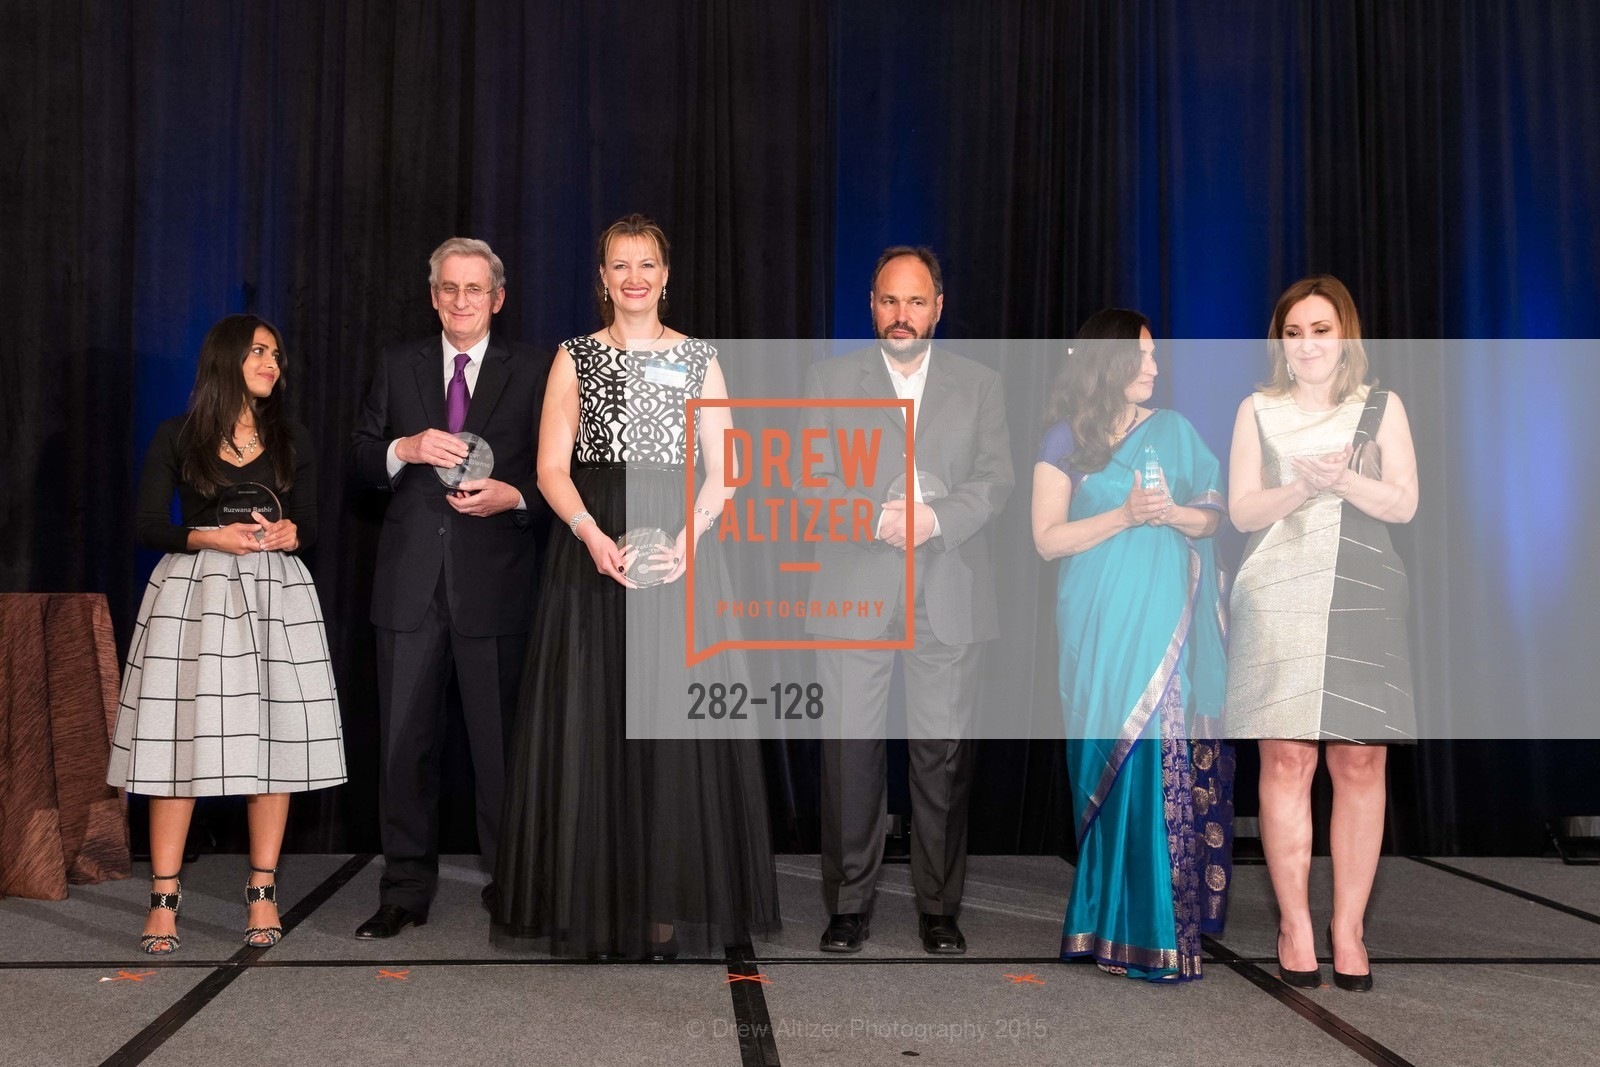 Ruzwana Bashir, Ruediger Naumann-Etienne, Petra Dierkes-Thrun, Paul Maritz, Padmasree Warrior, Noosheen Hashemi, World Affairs Council Awards Dinner: Global Actors | Global Reach | Global Impact, Four Seasons San Francisco, May 25th, 2015